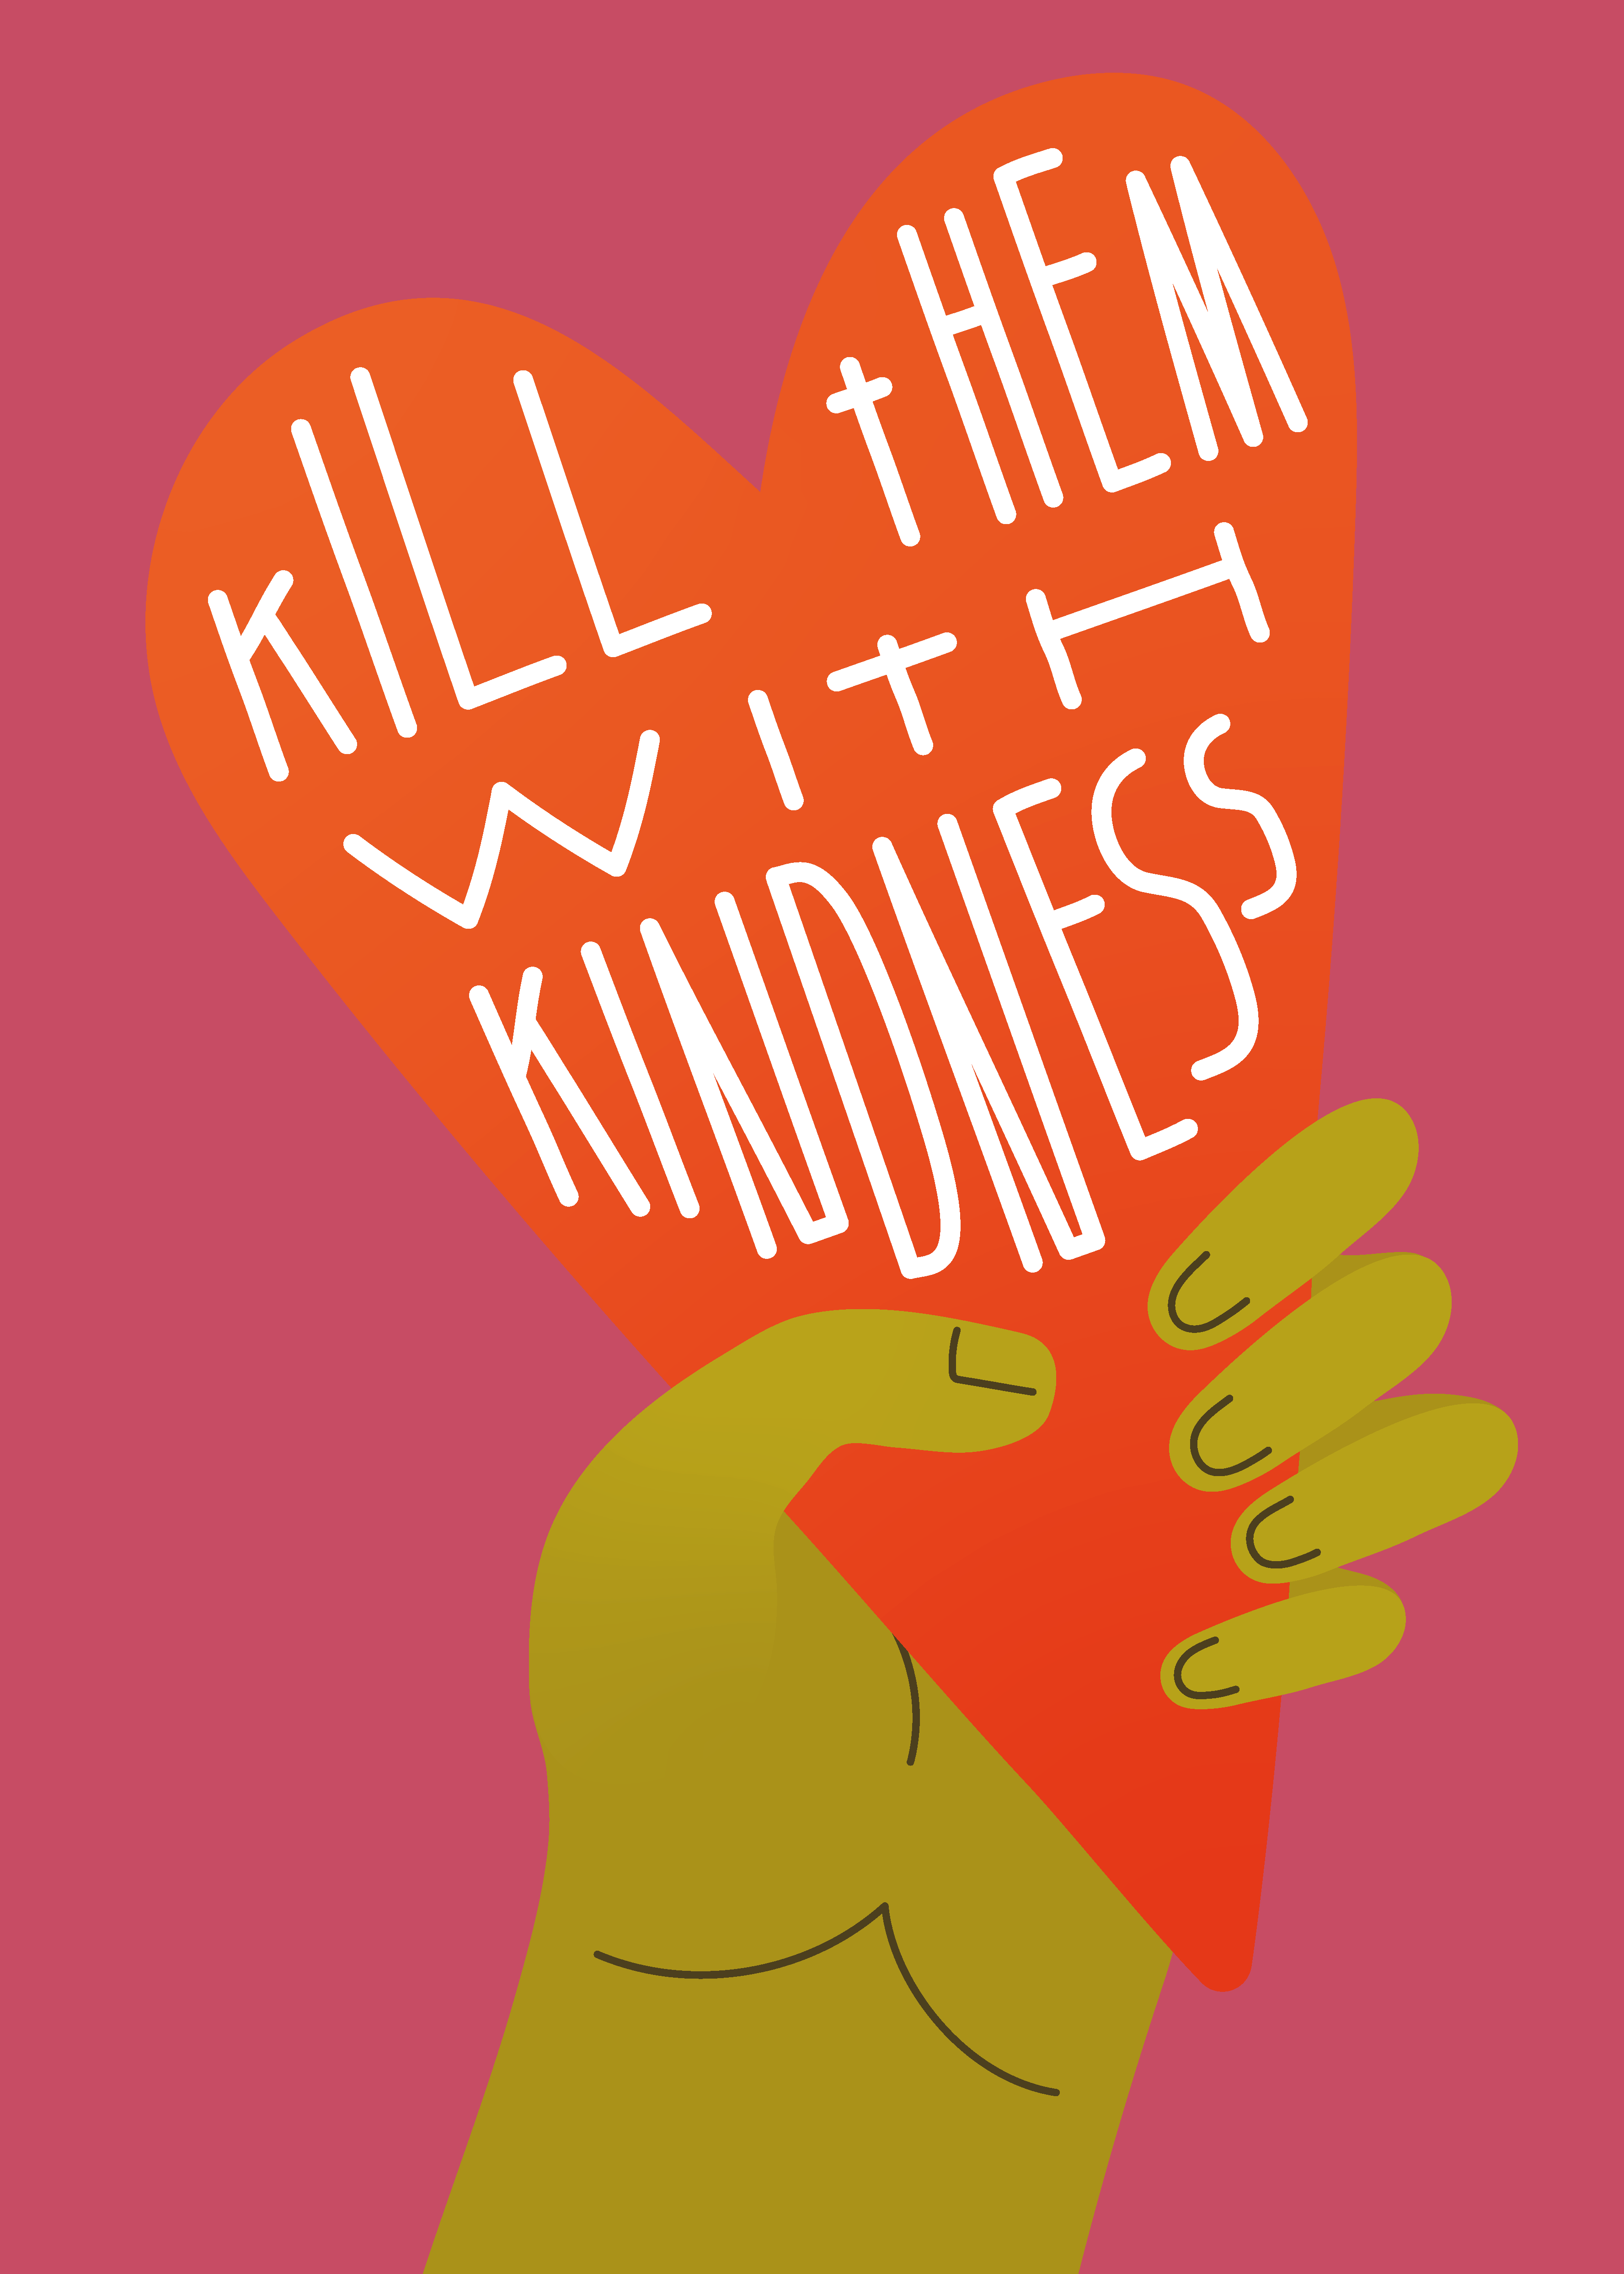 Kill Them With Kindness main image